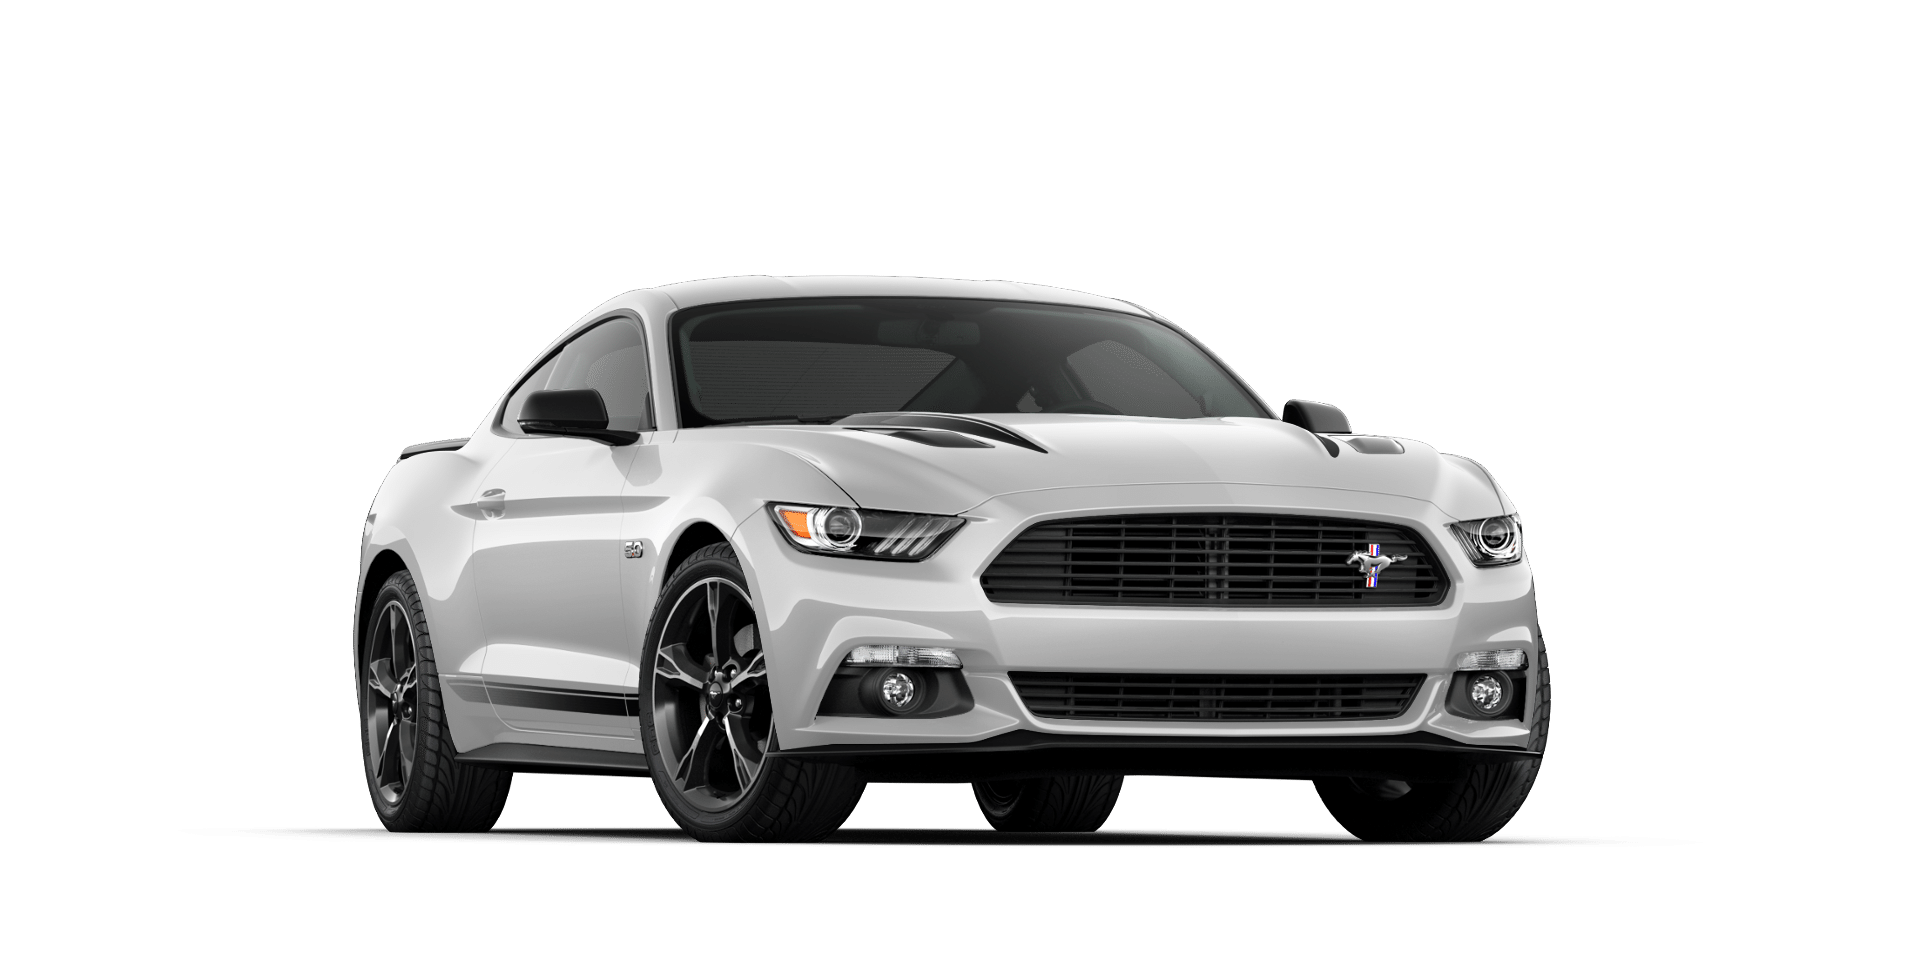 2017 Ford Mustang Build & Price Cheap sports cars